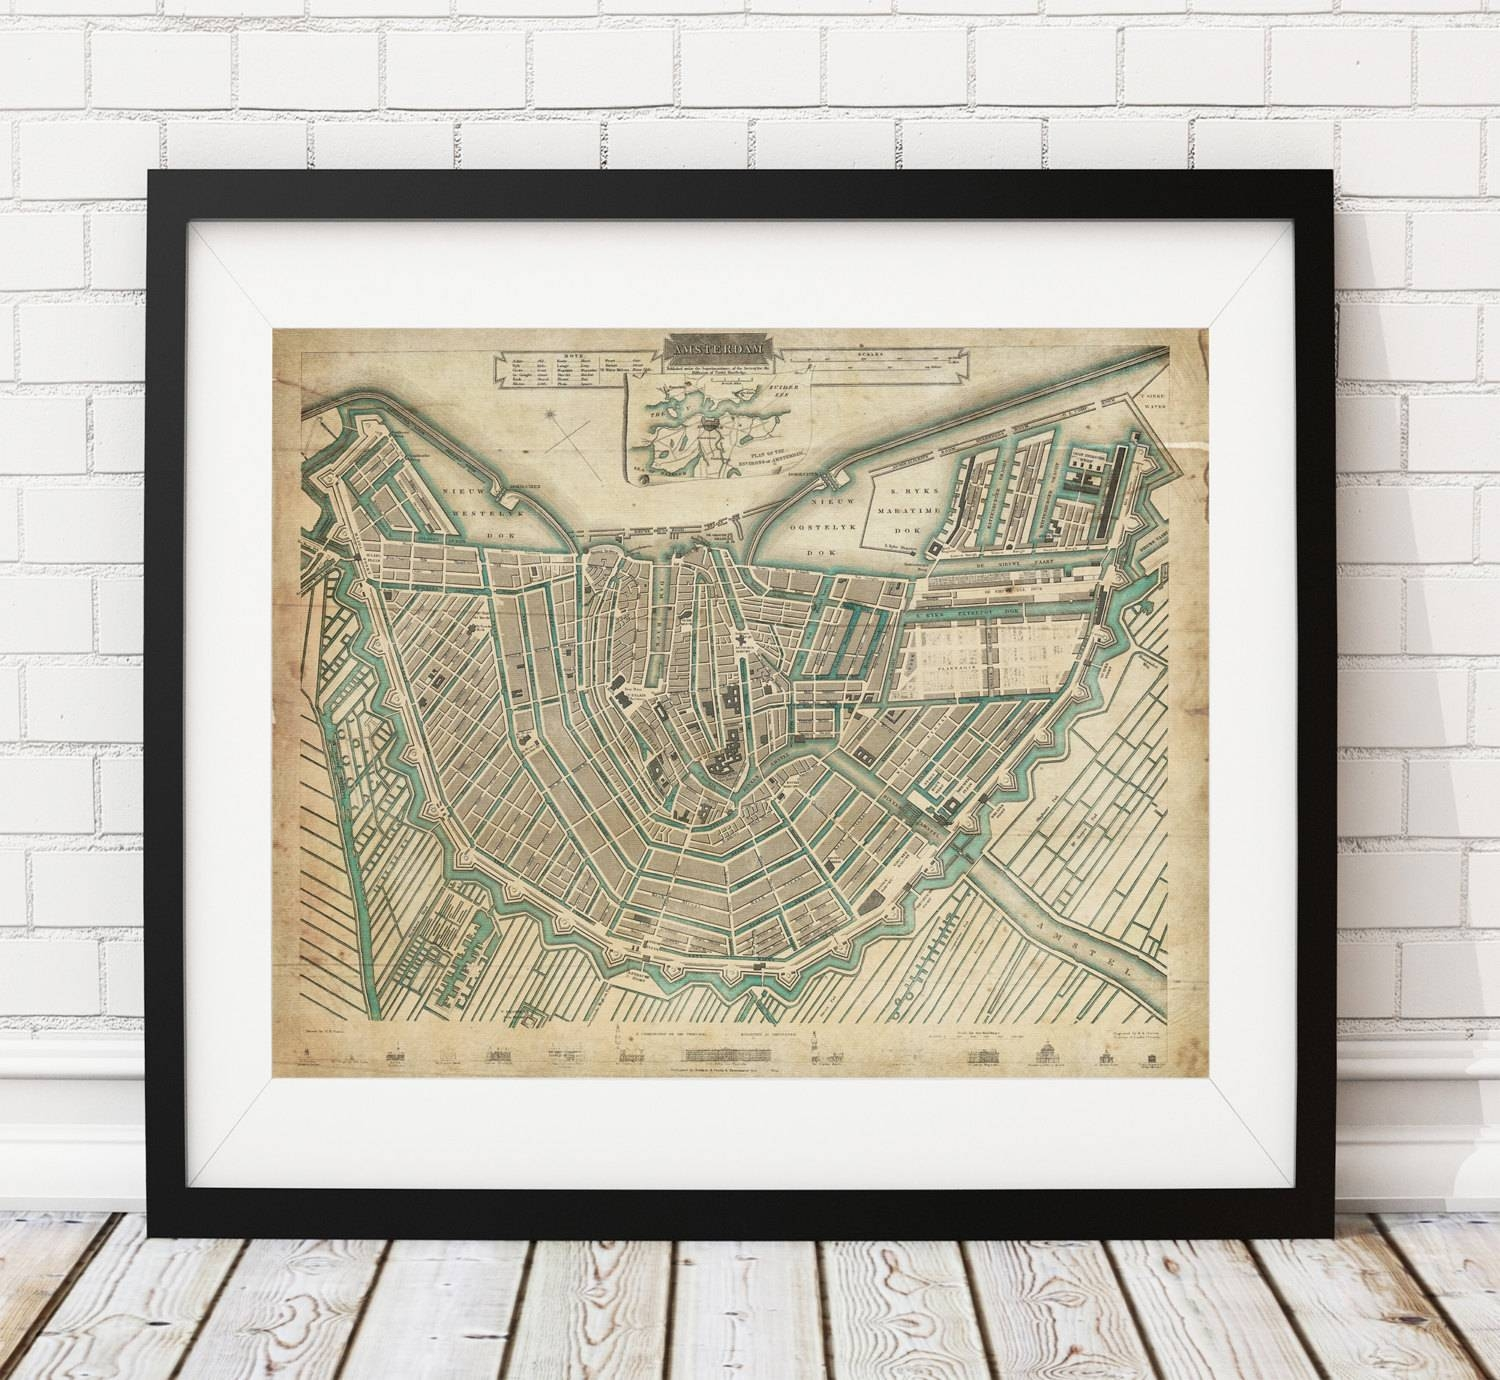 Amsterdam Map Print, Vintage Map Art, Antique Map, Wall Art Within Most Current Antique Map Wall Art (View 11 of 20)